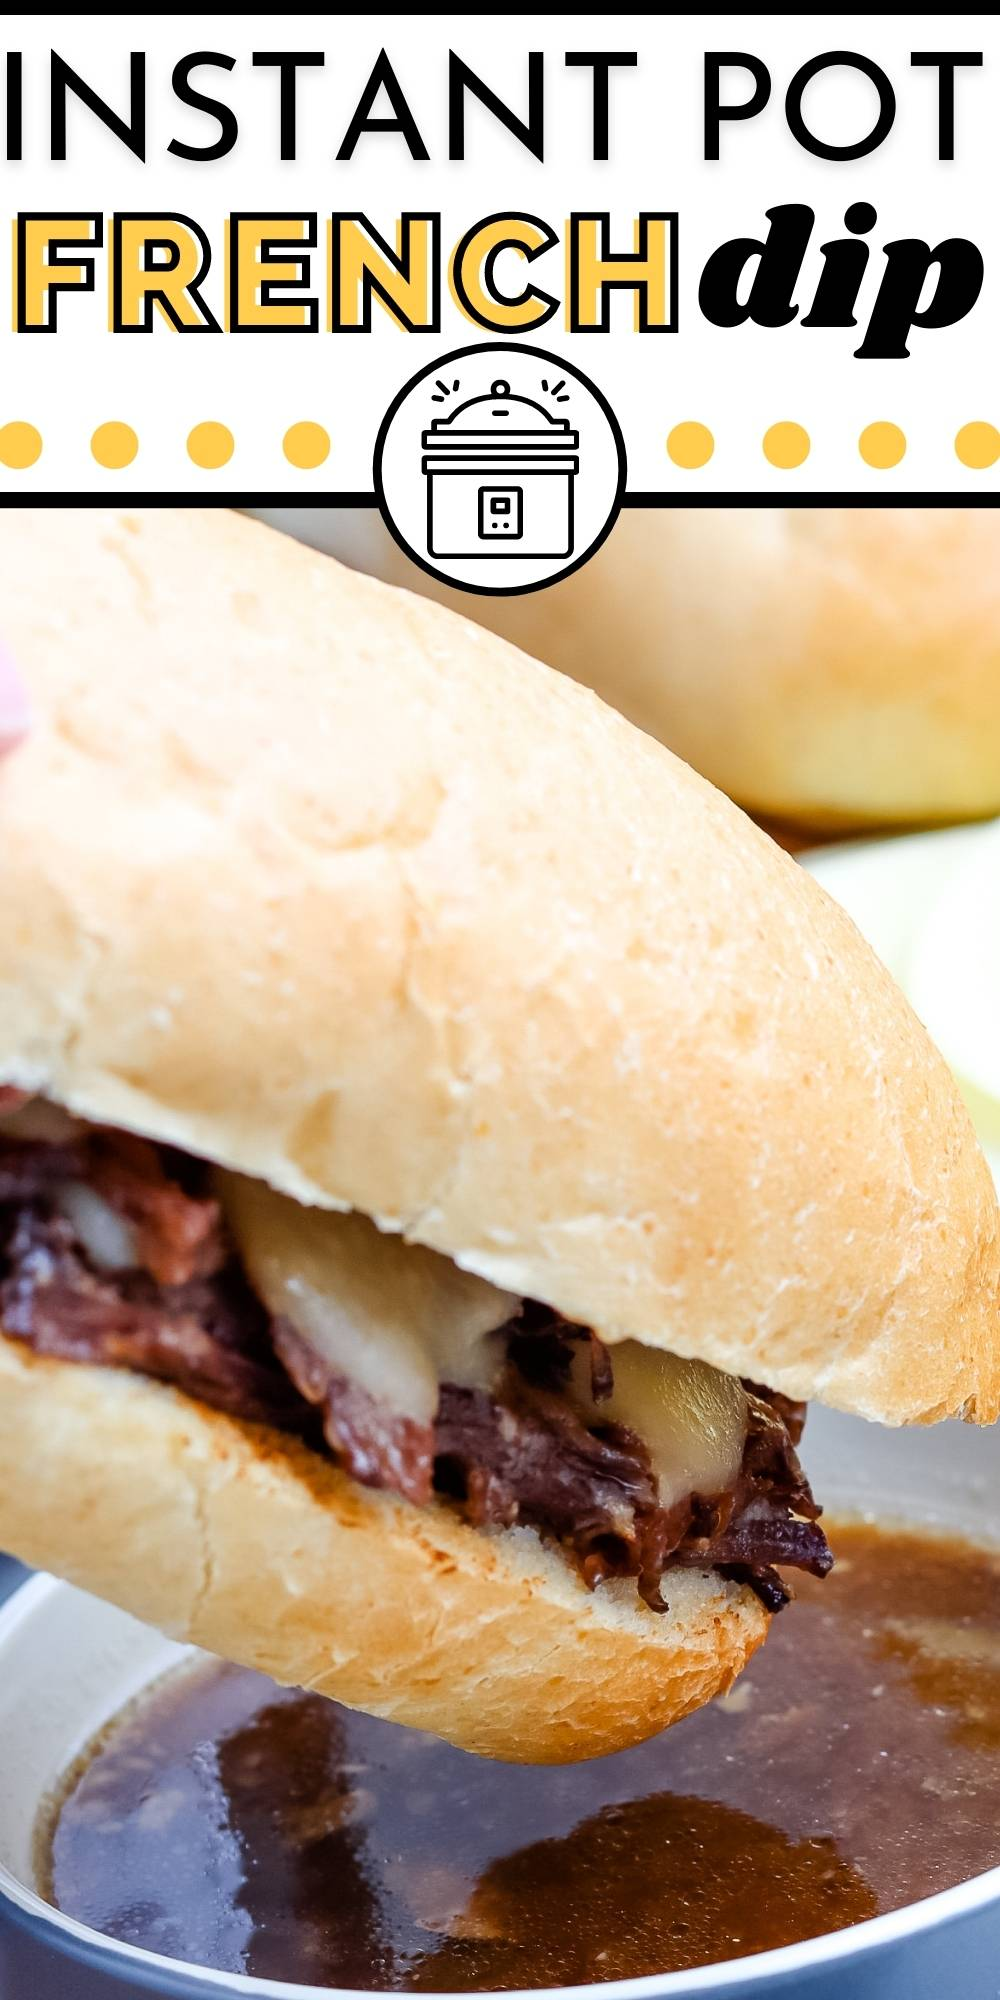 This Instant Pot French Dip Recipe is great when feeding a crowd. Chuck roast is pressure-cooked until it's melt-in-your-mouth tender and then served on hoagie rolls with Provolone cheese. via @easybudgetrecipes